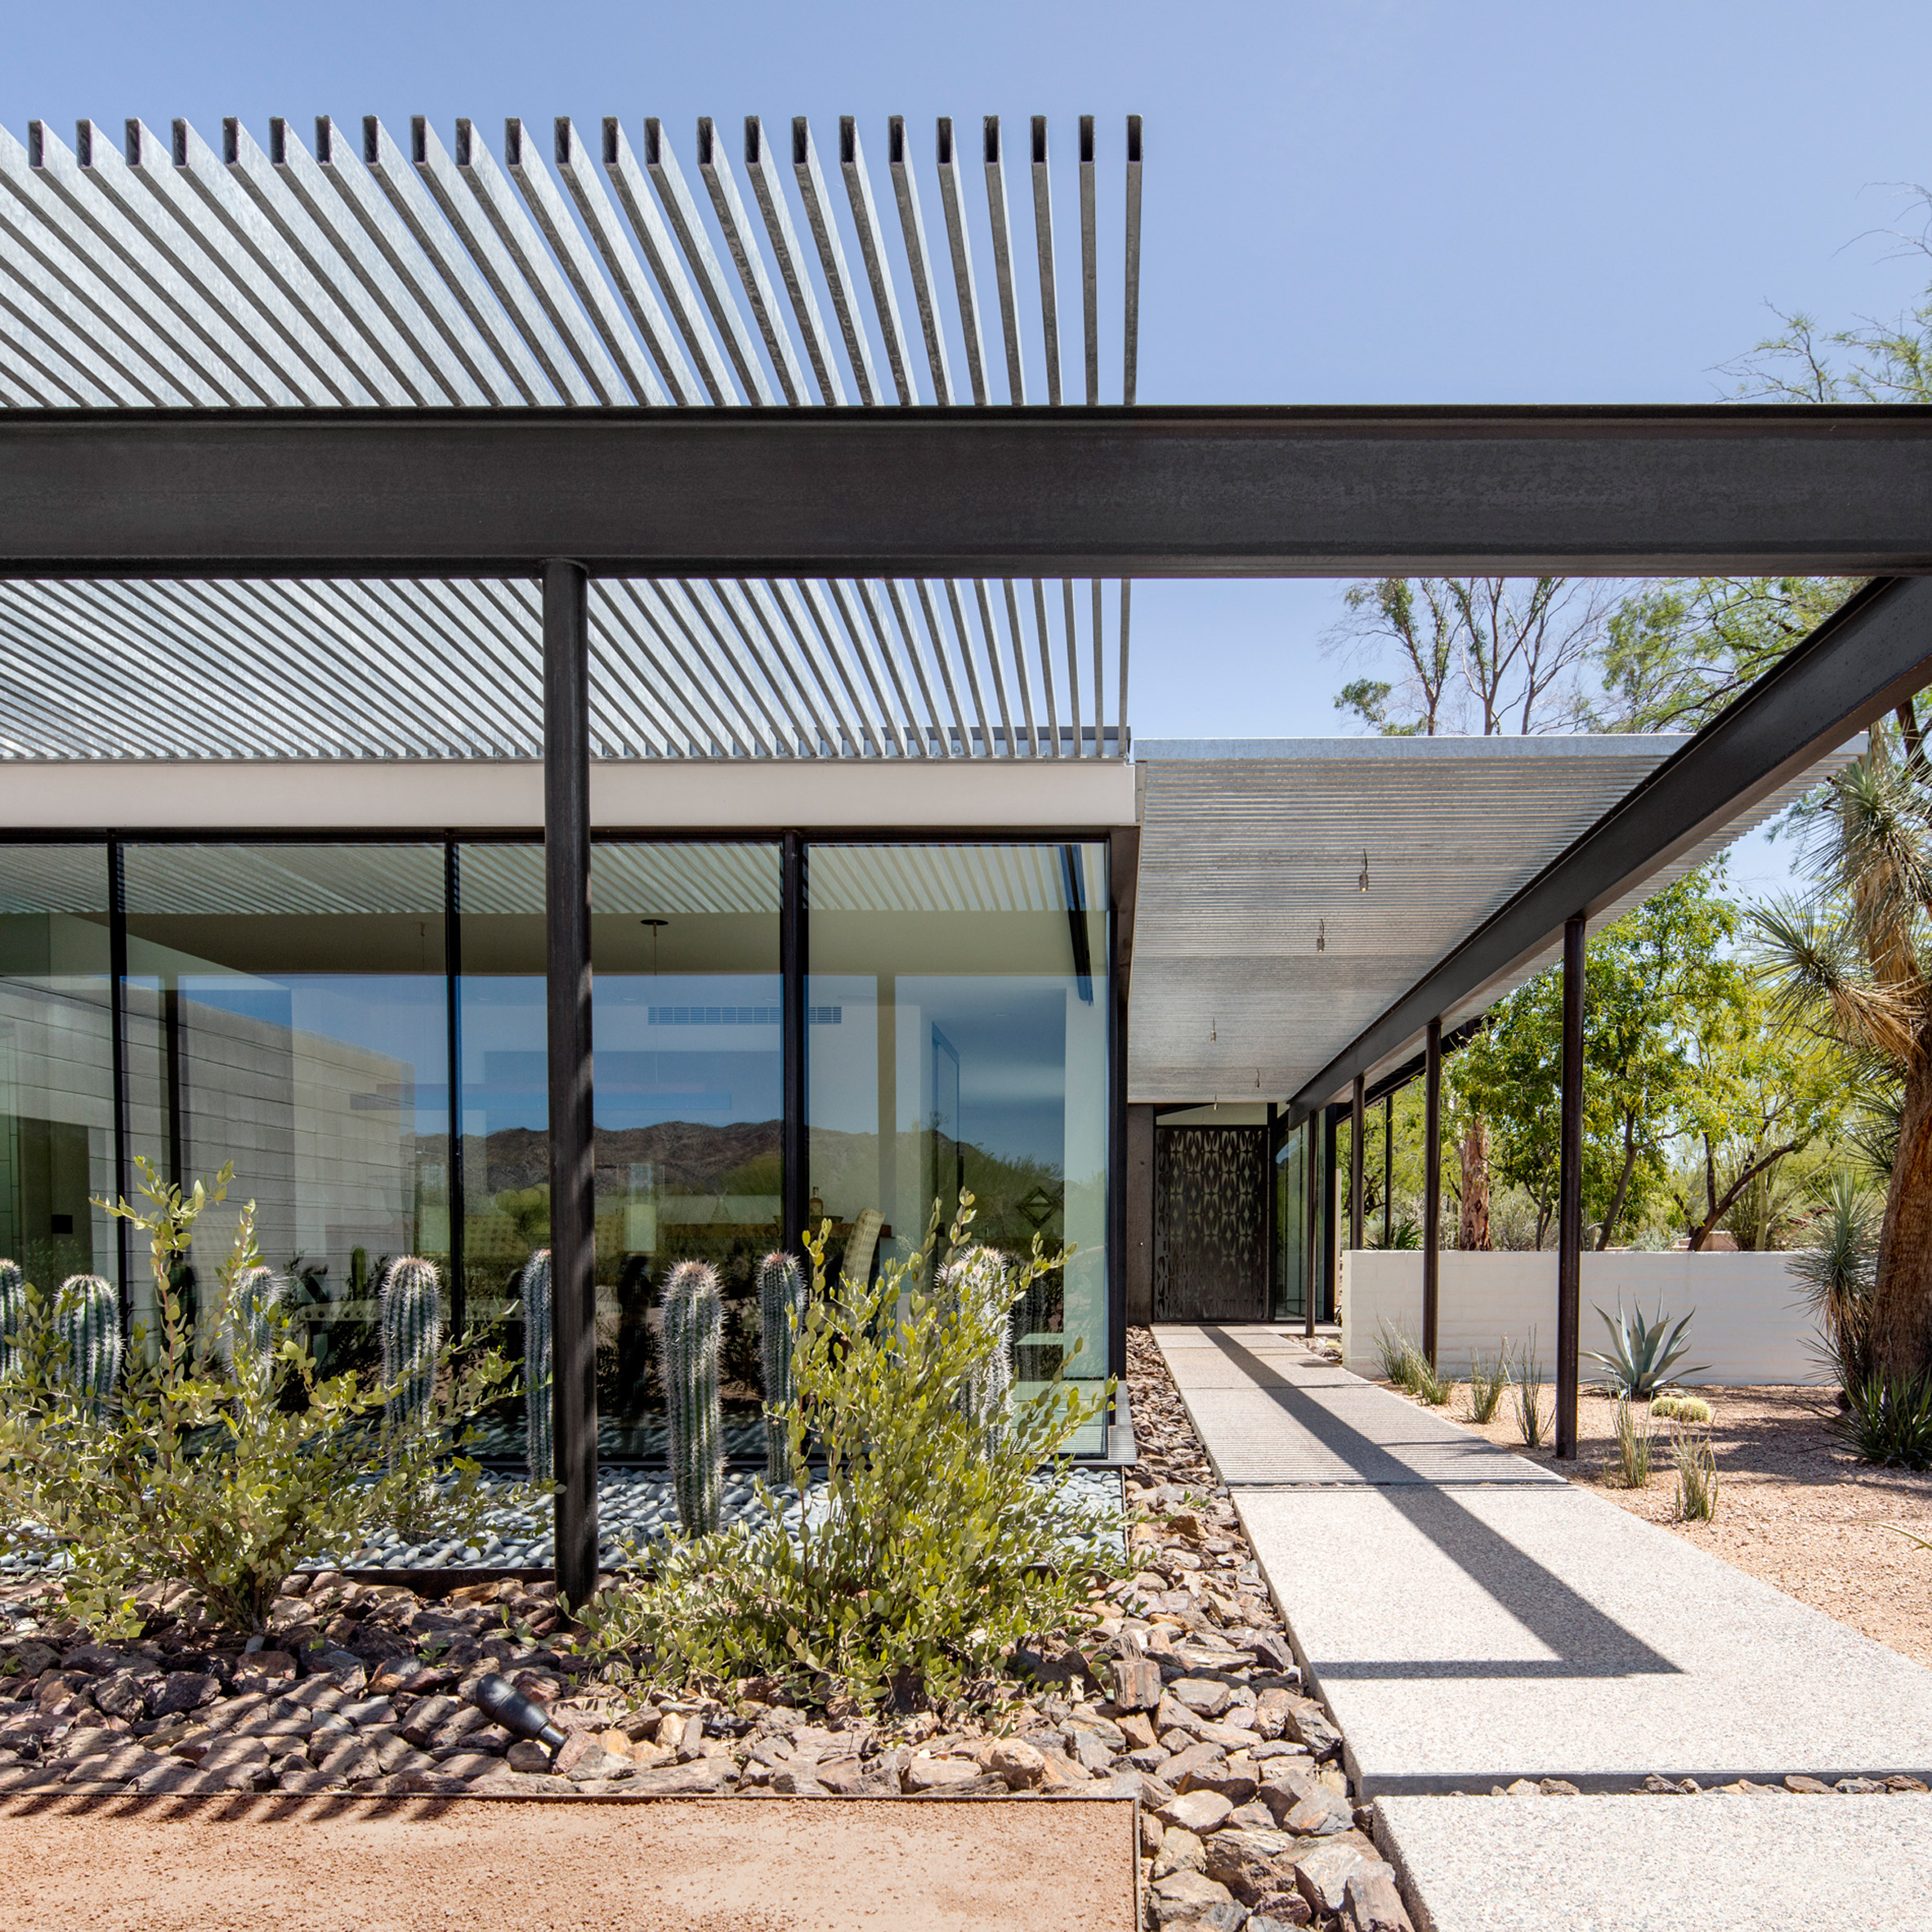 Alber Residence by The Construction Zone